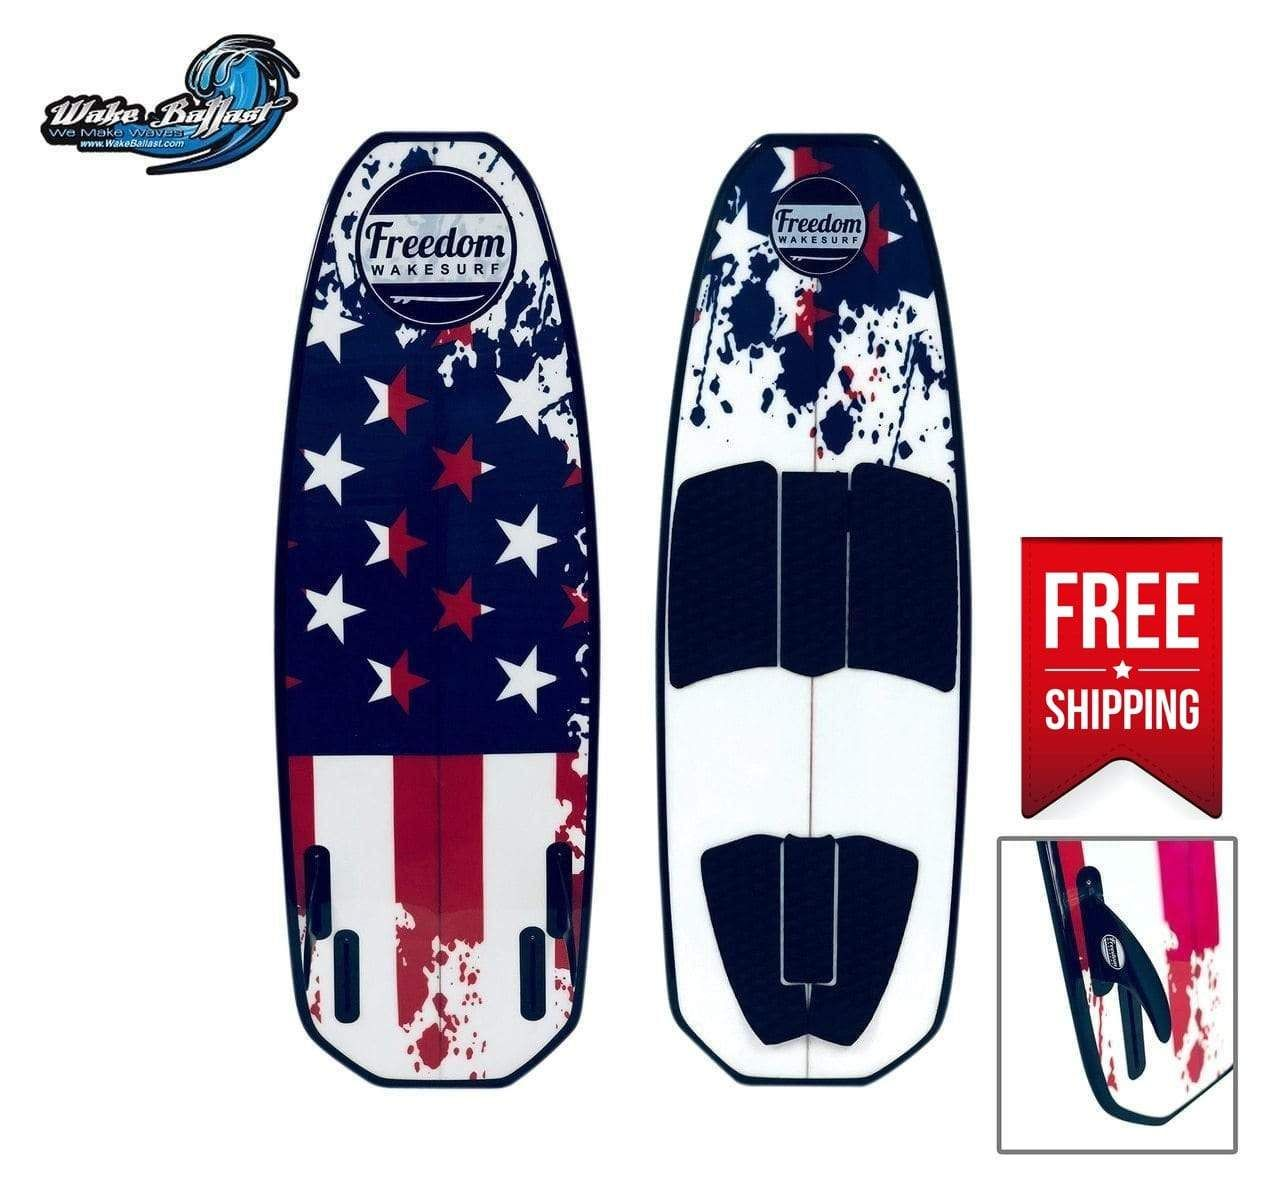 """Surfboards come in all shapes, styles, and lengths, and our Wakesurf Liberty Surfboard is a unique board designed to allow beginning riders to grow with their boards. This special board features quad fins and a short design. At only 4'8"""", this shortboard is perfect for beginners and intermediate riders. Learn how to balance, how to catch a wave, and how to carve like the pros with the F4 Quad fin setup, the EPS core, and the dual concave base for a fast and responsive ride – offering limitless s"""